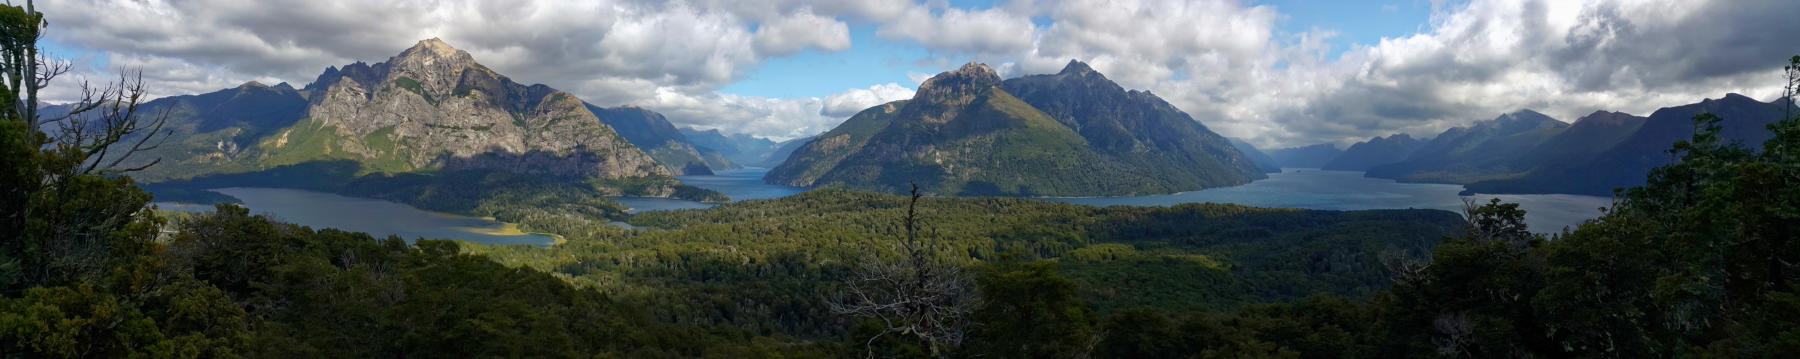 Panorama - View from Cerro Llao Llao